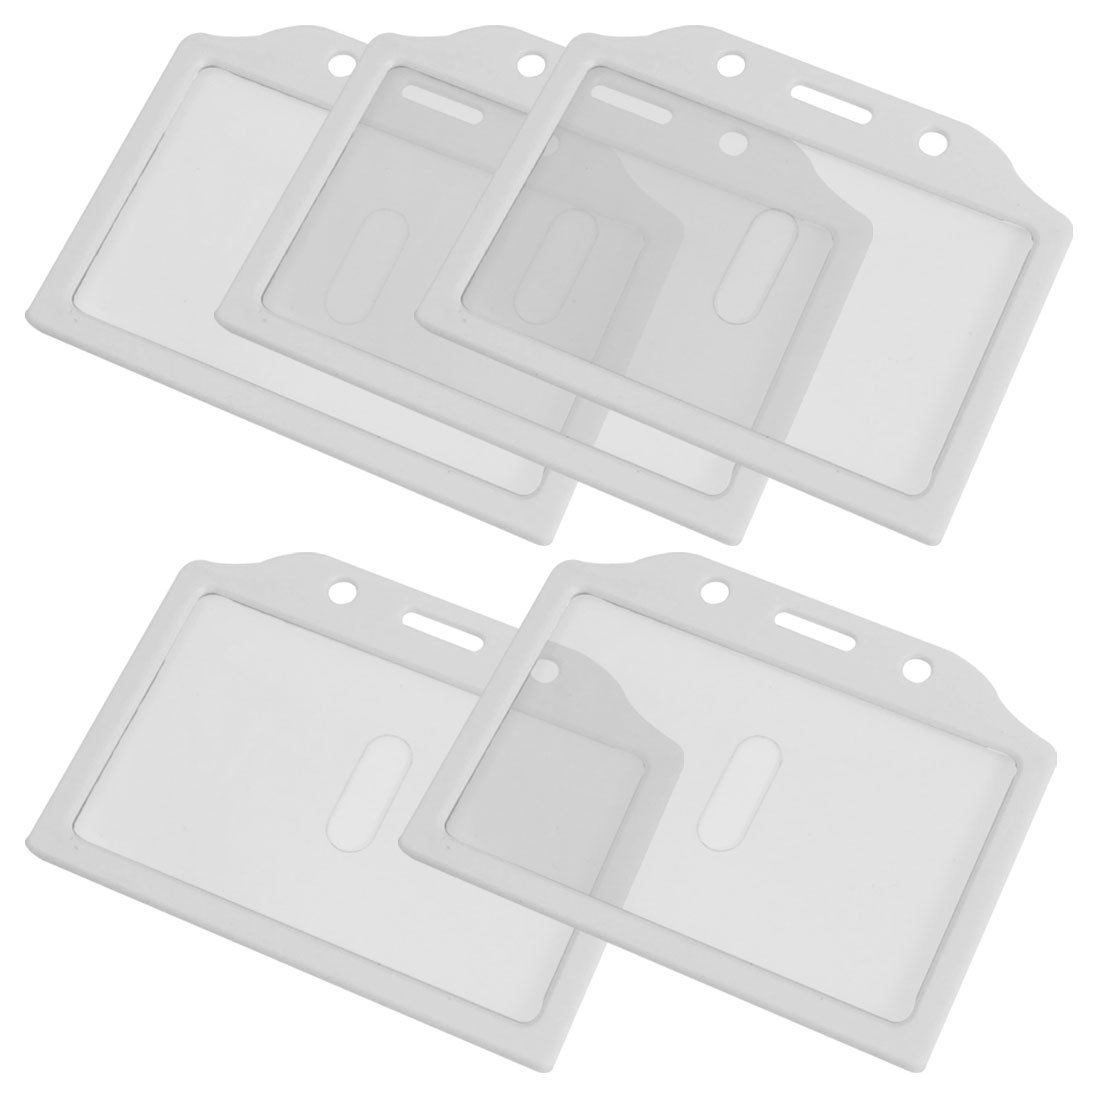 10pack (5PCS White Clear Plastic Business Badge Credit Card Holder Case for Students never leather badge holder business card holder neck lanyards for id cards waterproof antimagnetic card sets school supplies